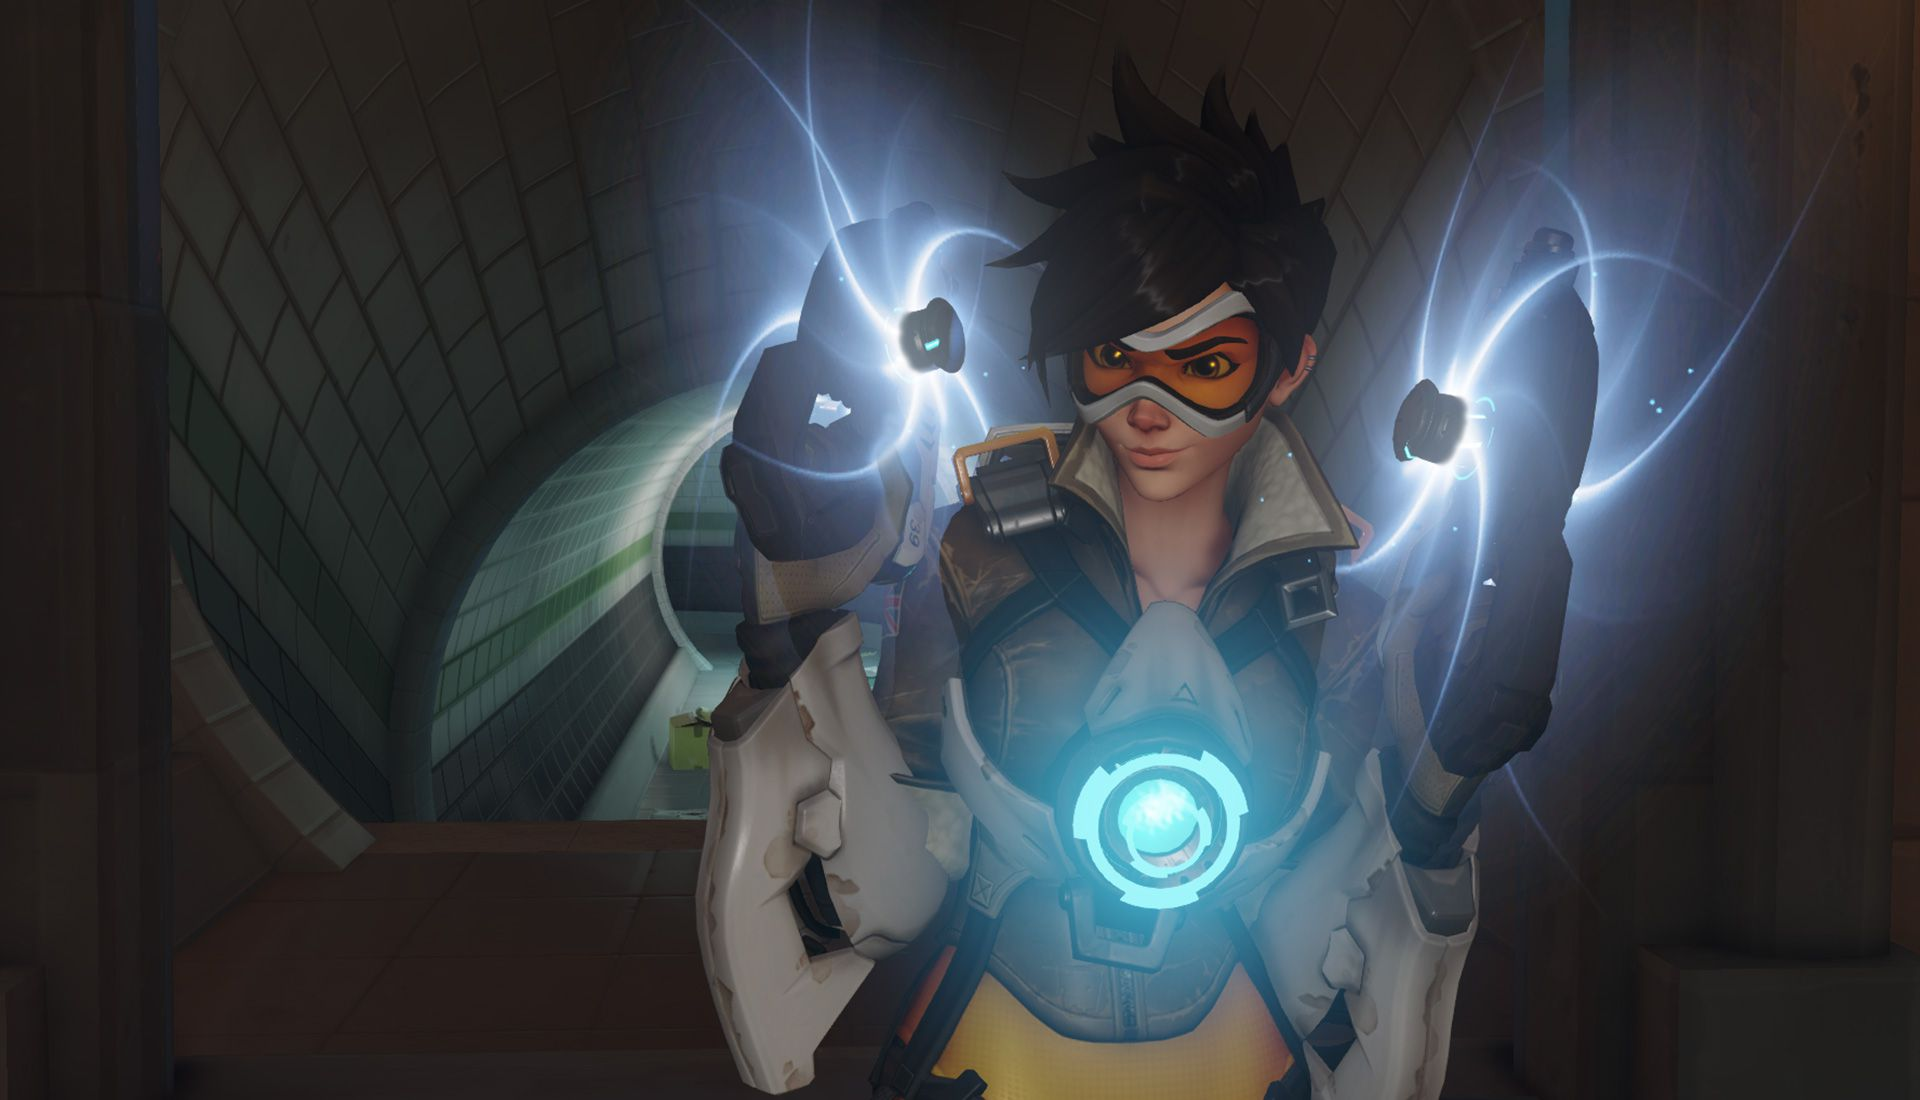 Tracer showing off her guns!